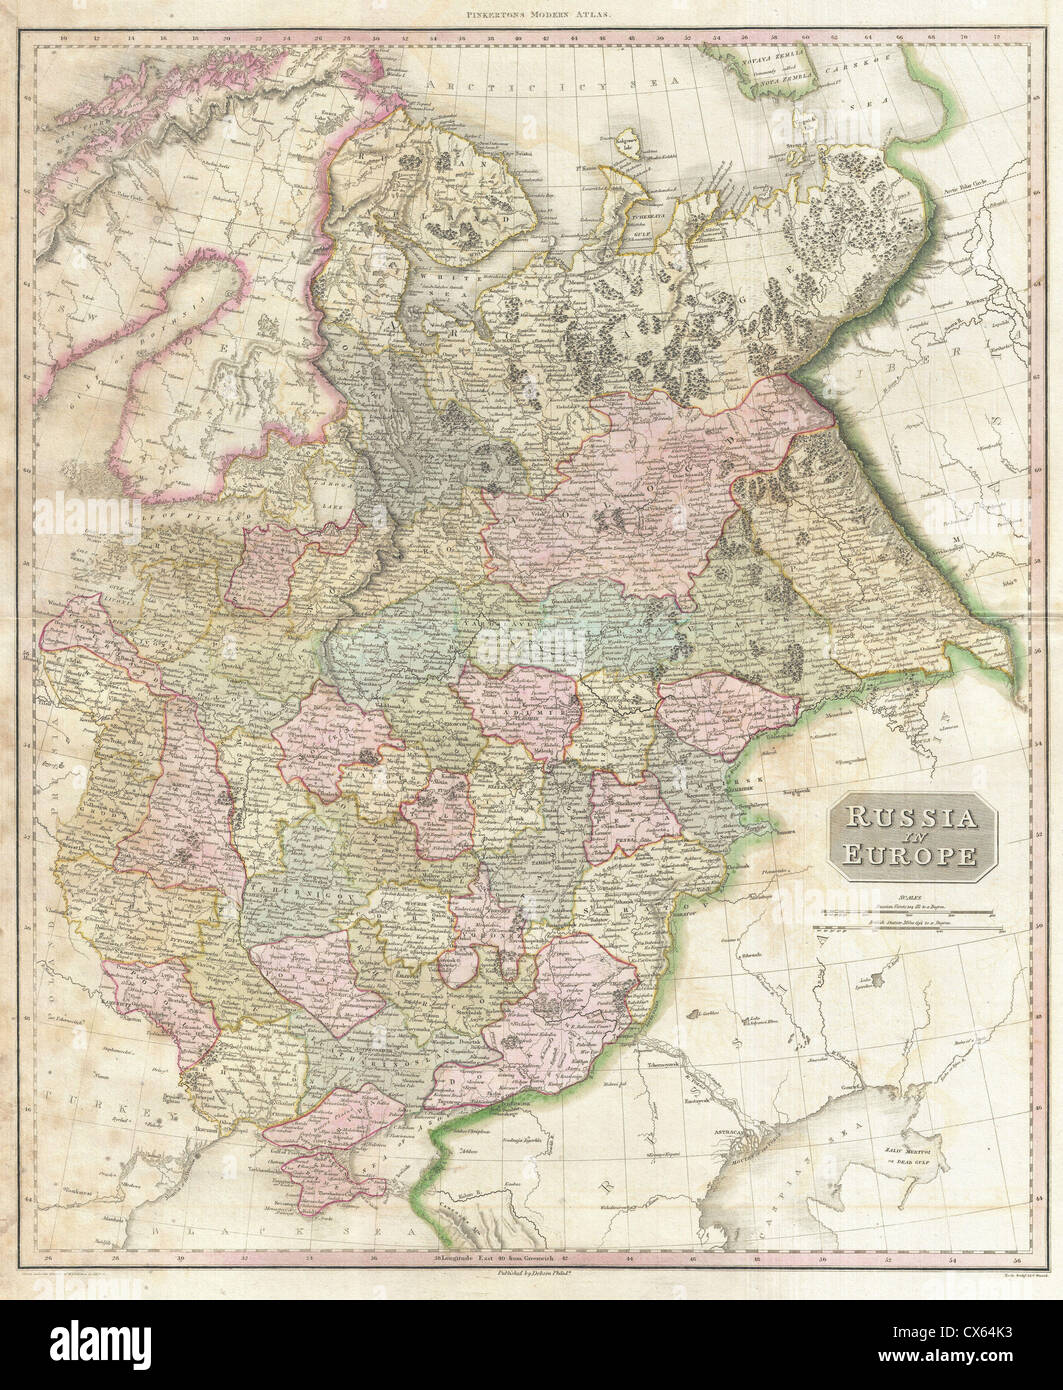 1818 pinkerton map of russia in europe stock image